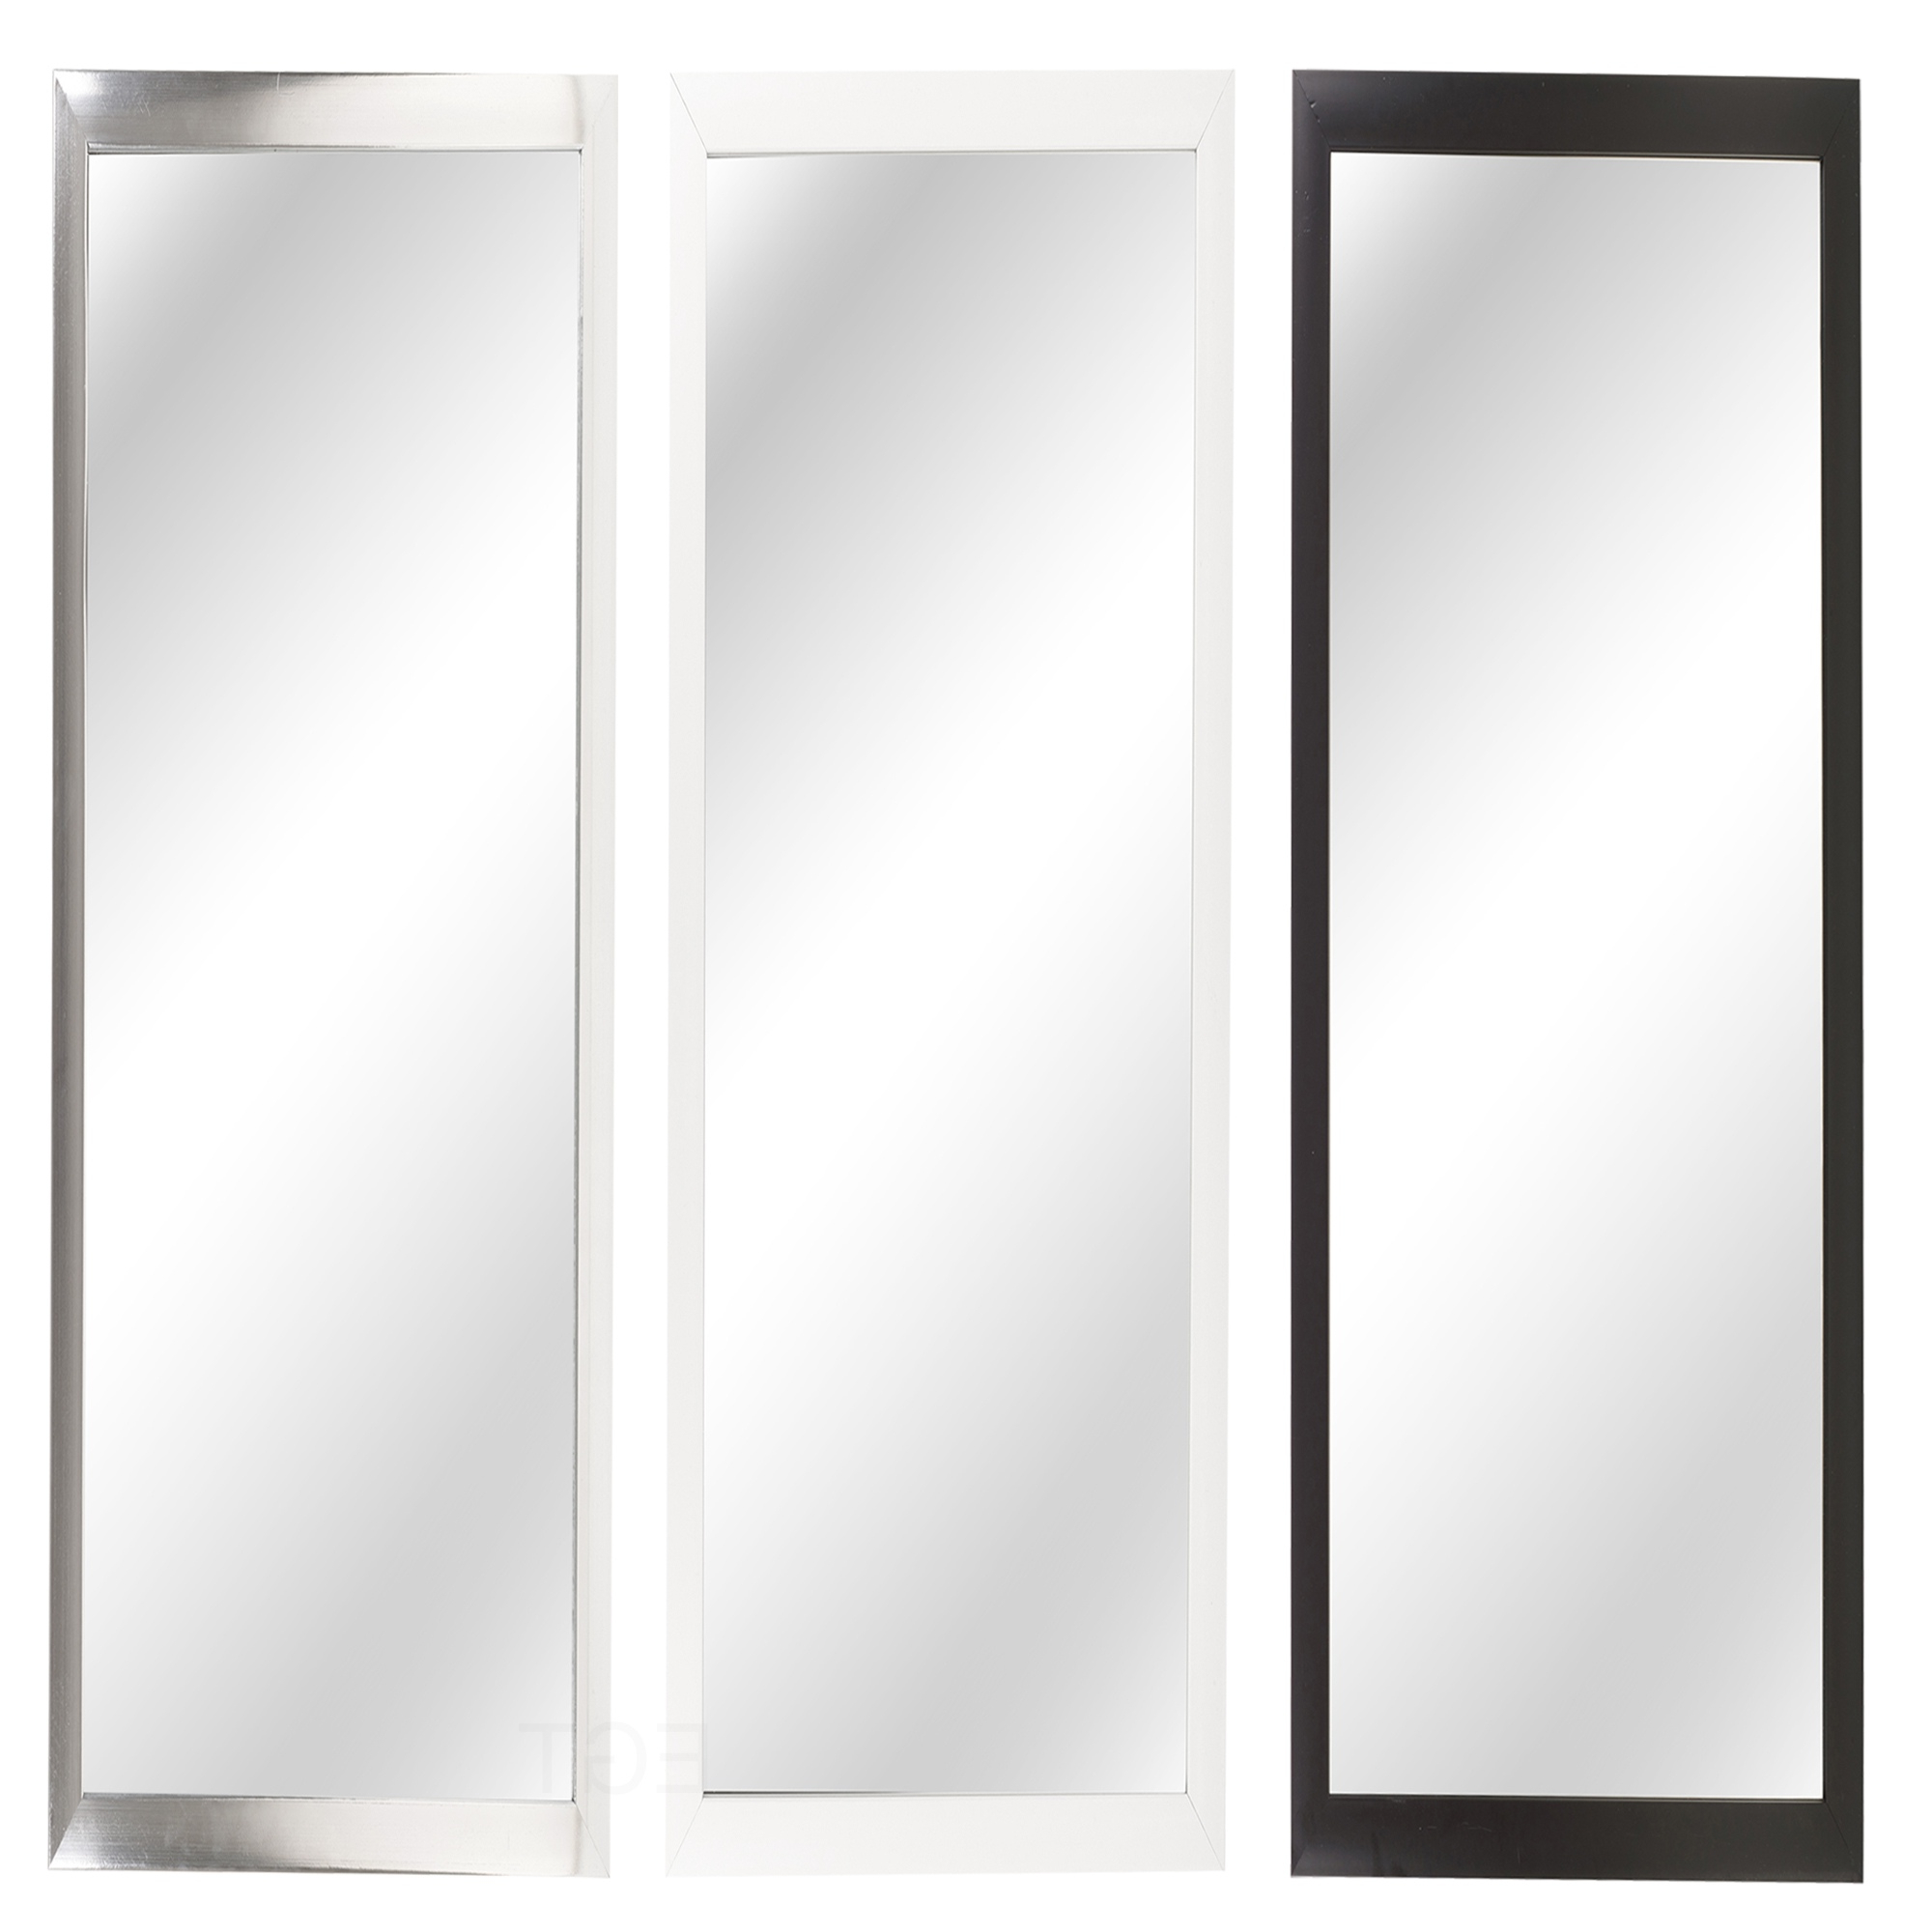 Recent Long Black Wall Mirrors Pertaining To Details About Large Long Wall Mirror Leaner Full Length Floor Bedroom  Furniture Hanging Dress (View 16 of 20)